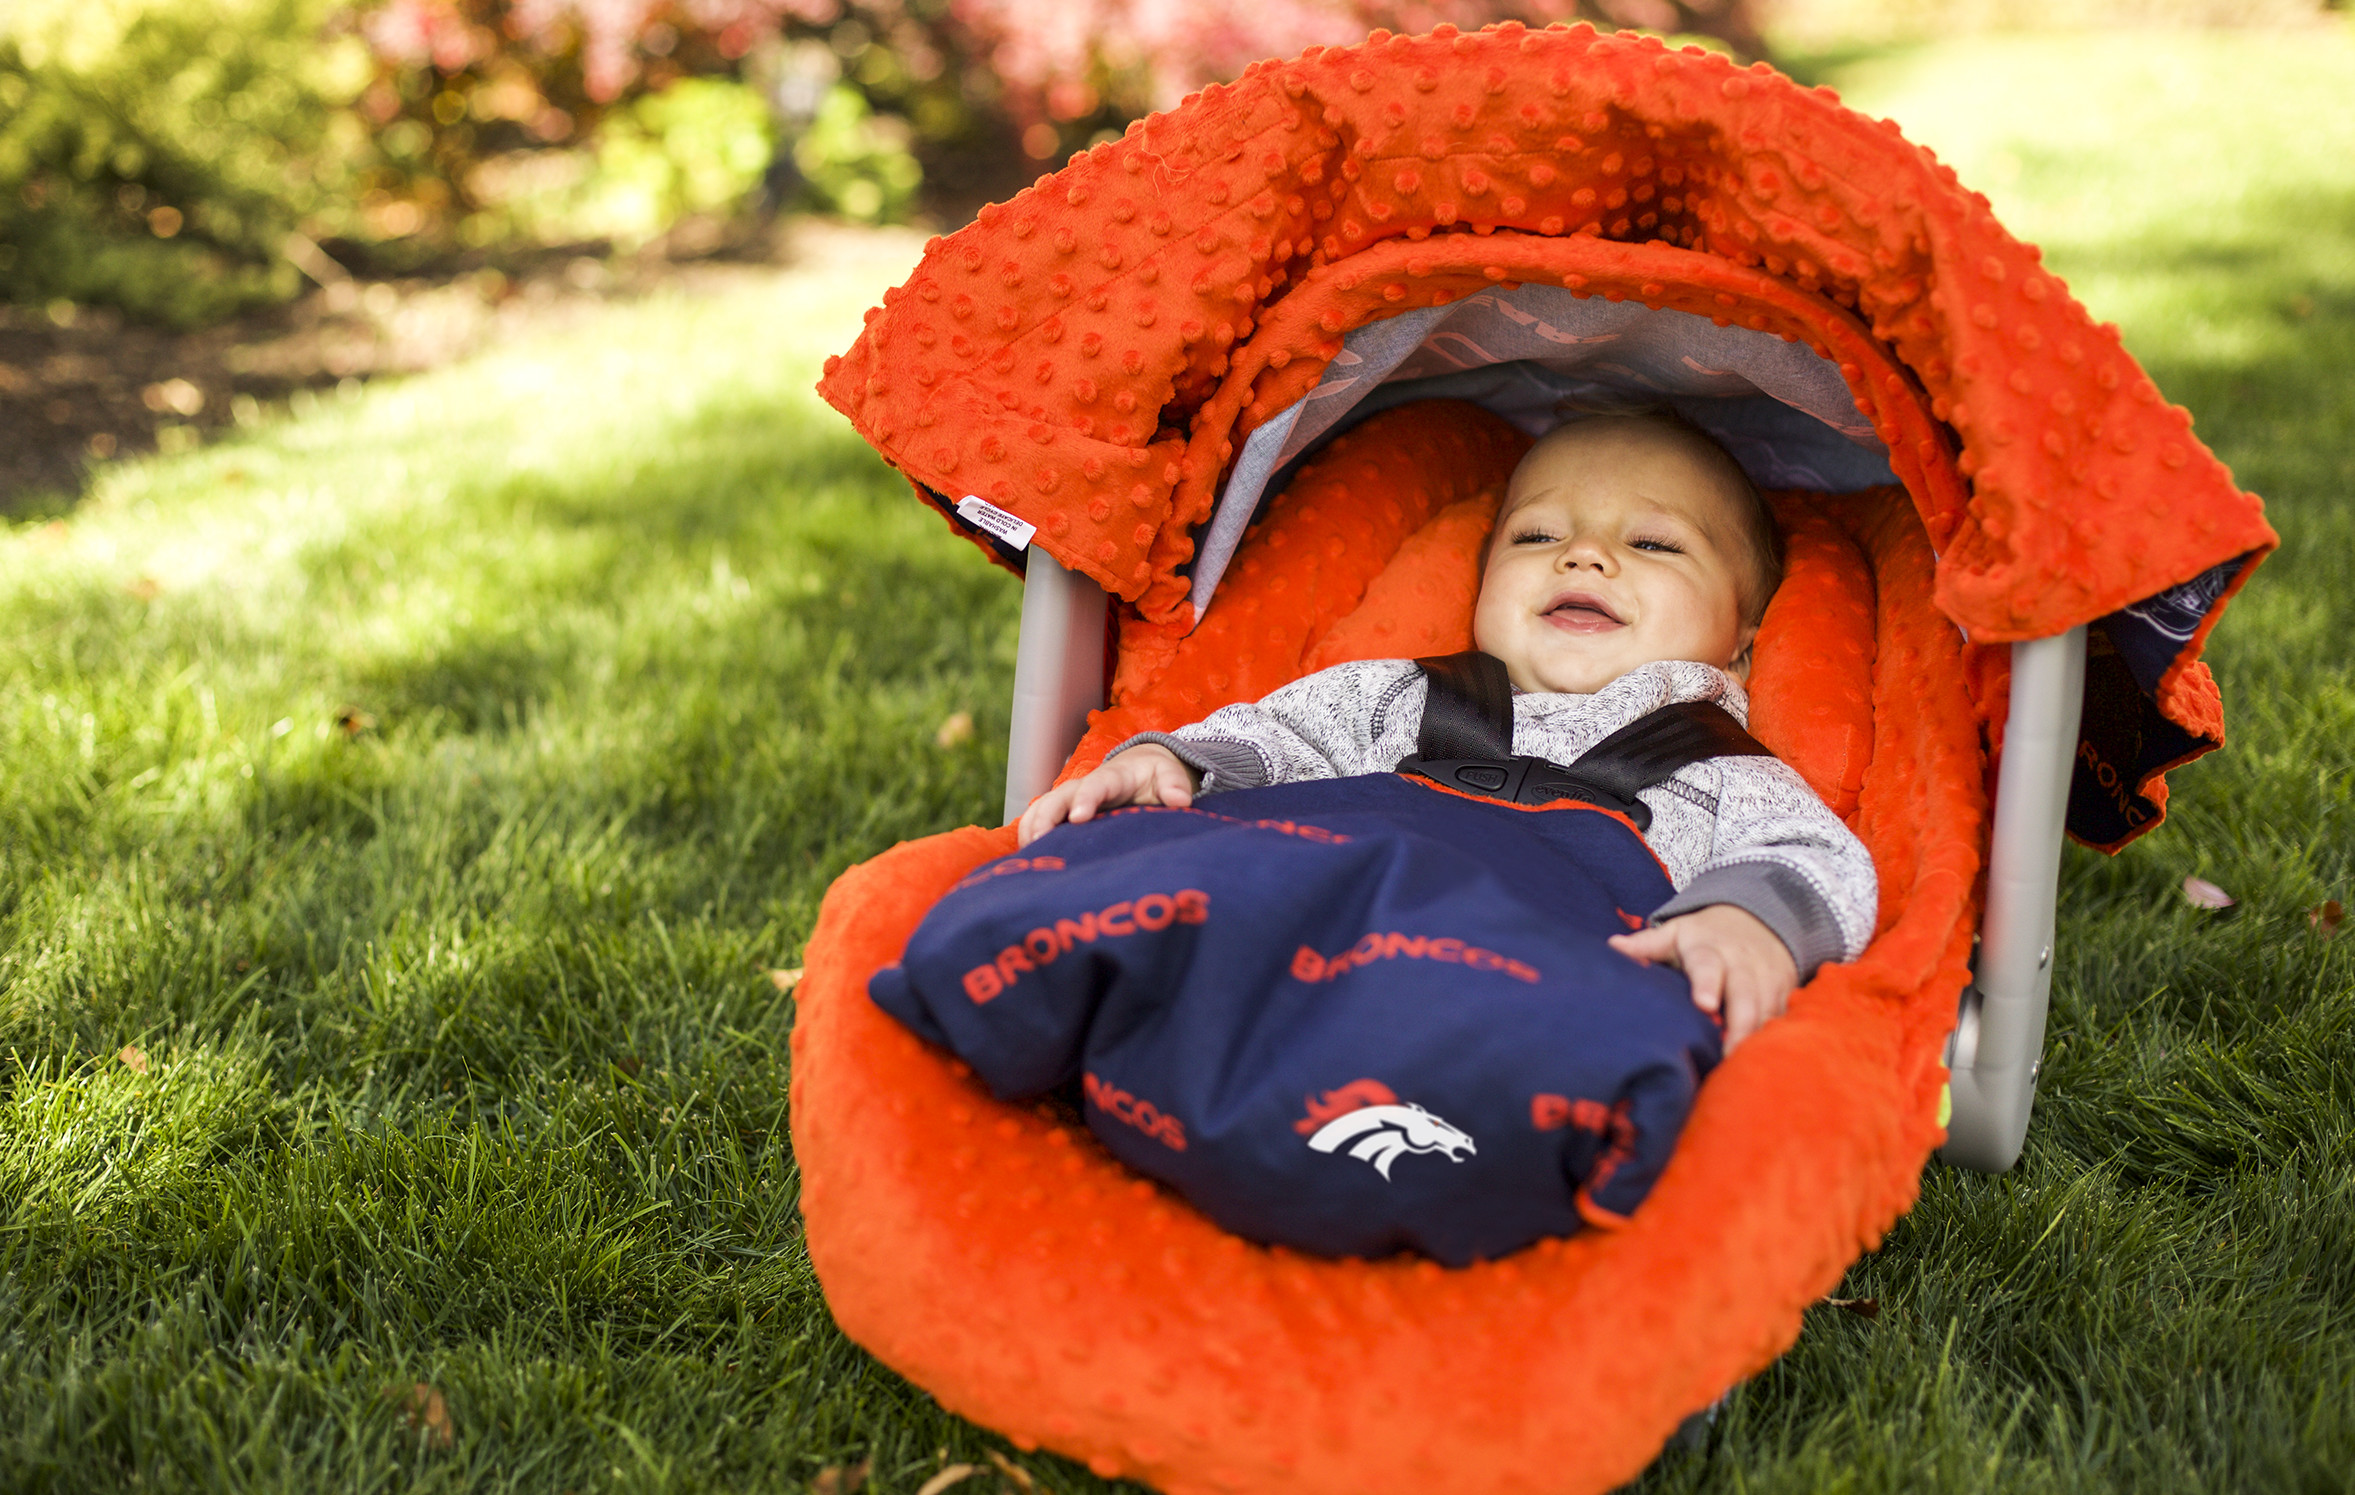 Canopy couture denver broncos whole caboodle for Canopy couture